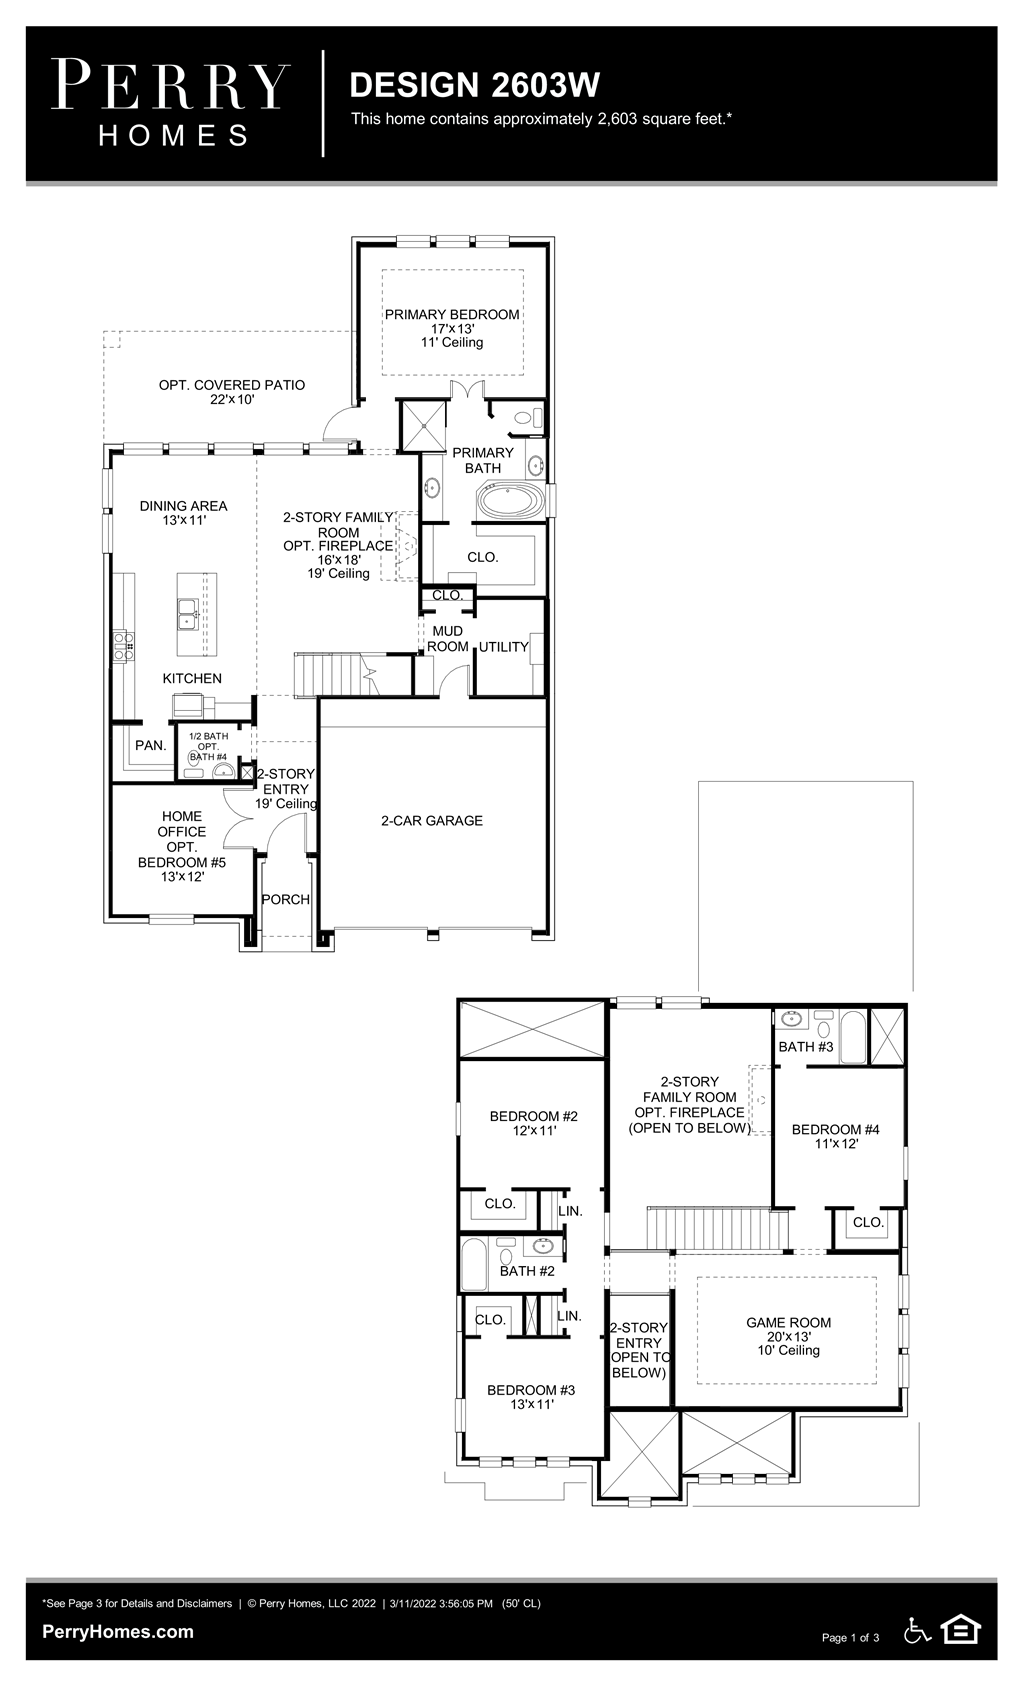 Floor Plan for 2603W